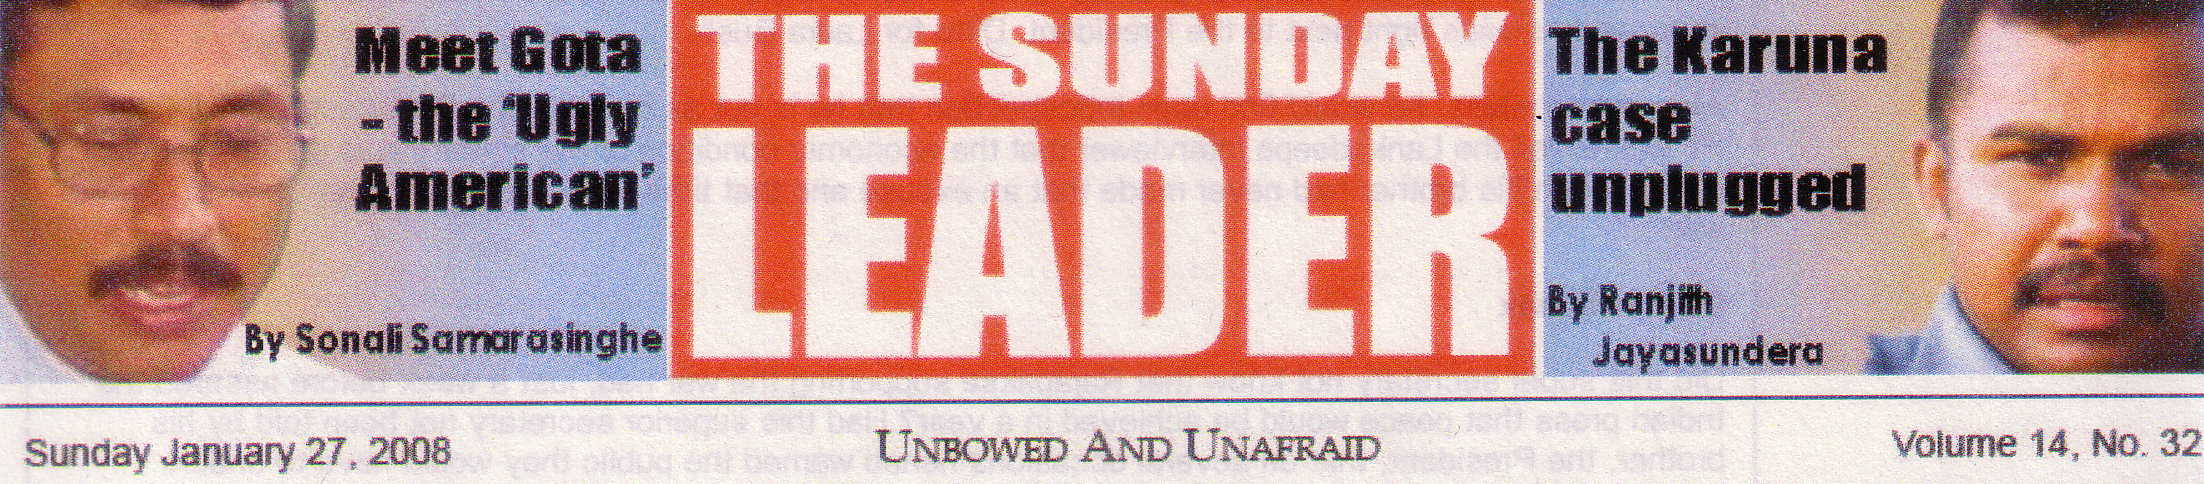 Sunday Leader Jan 27 2008